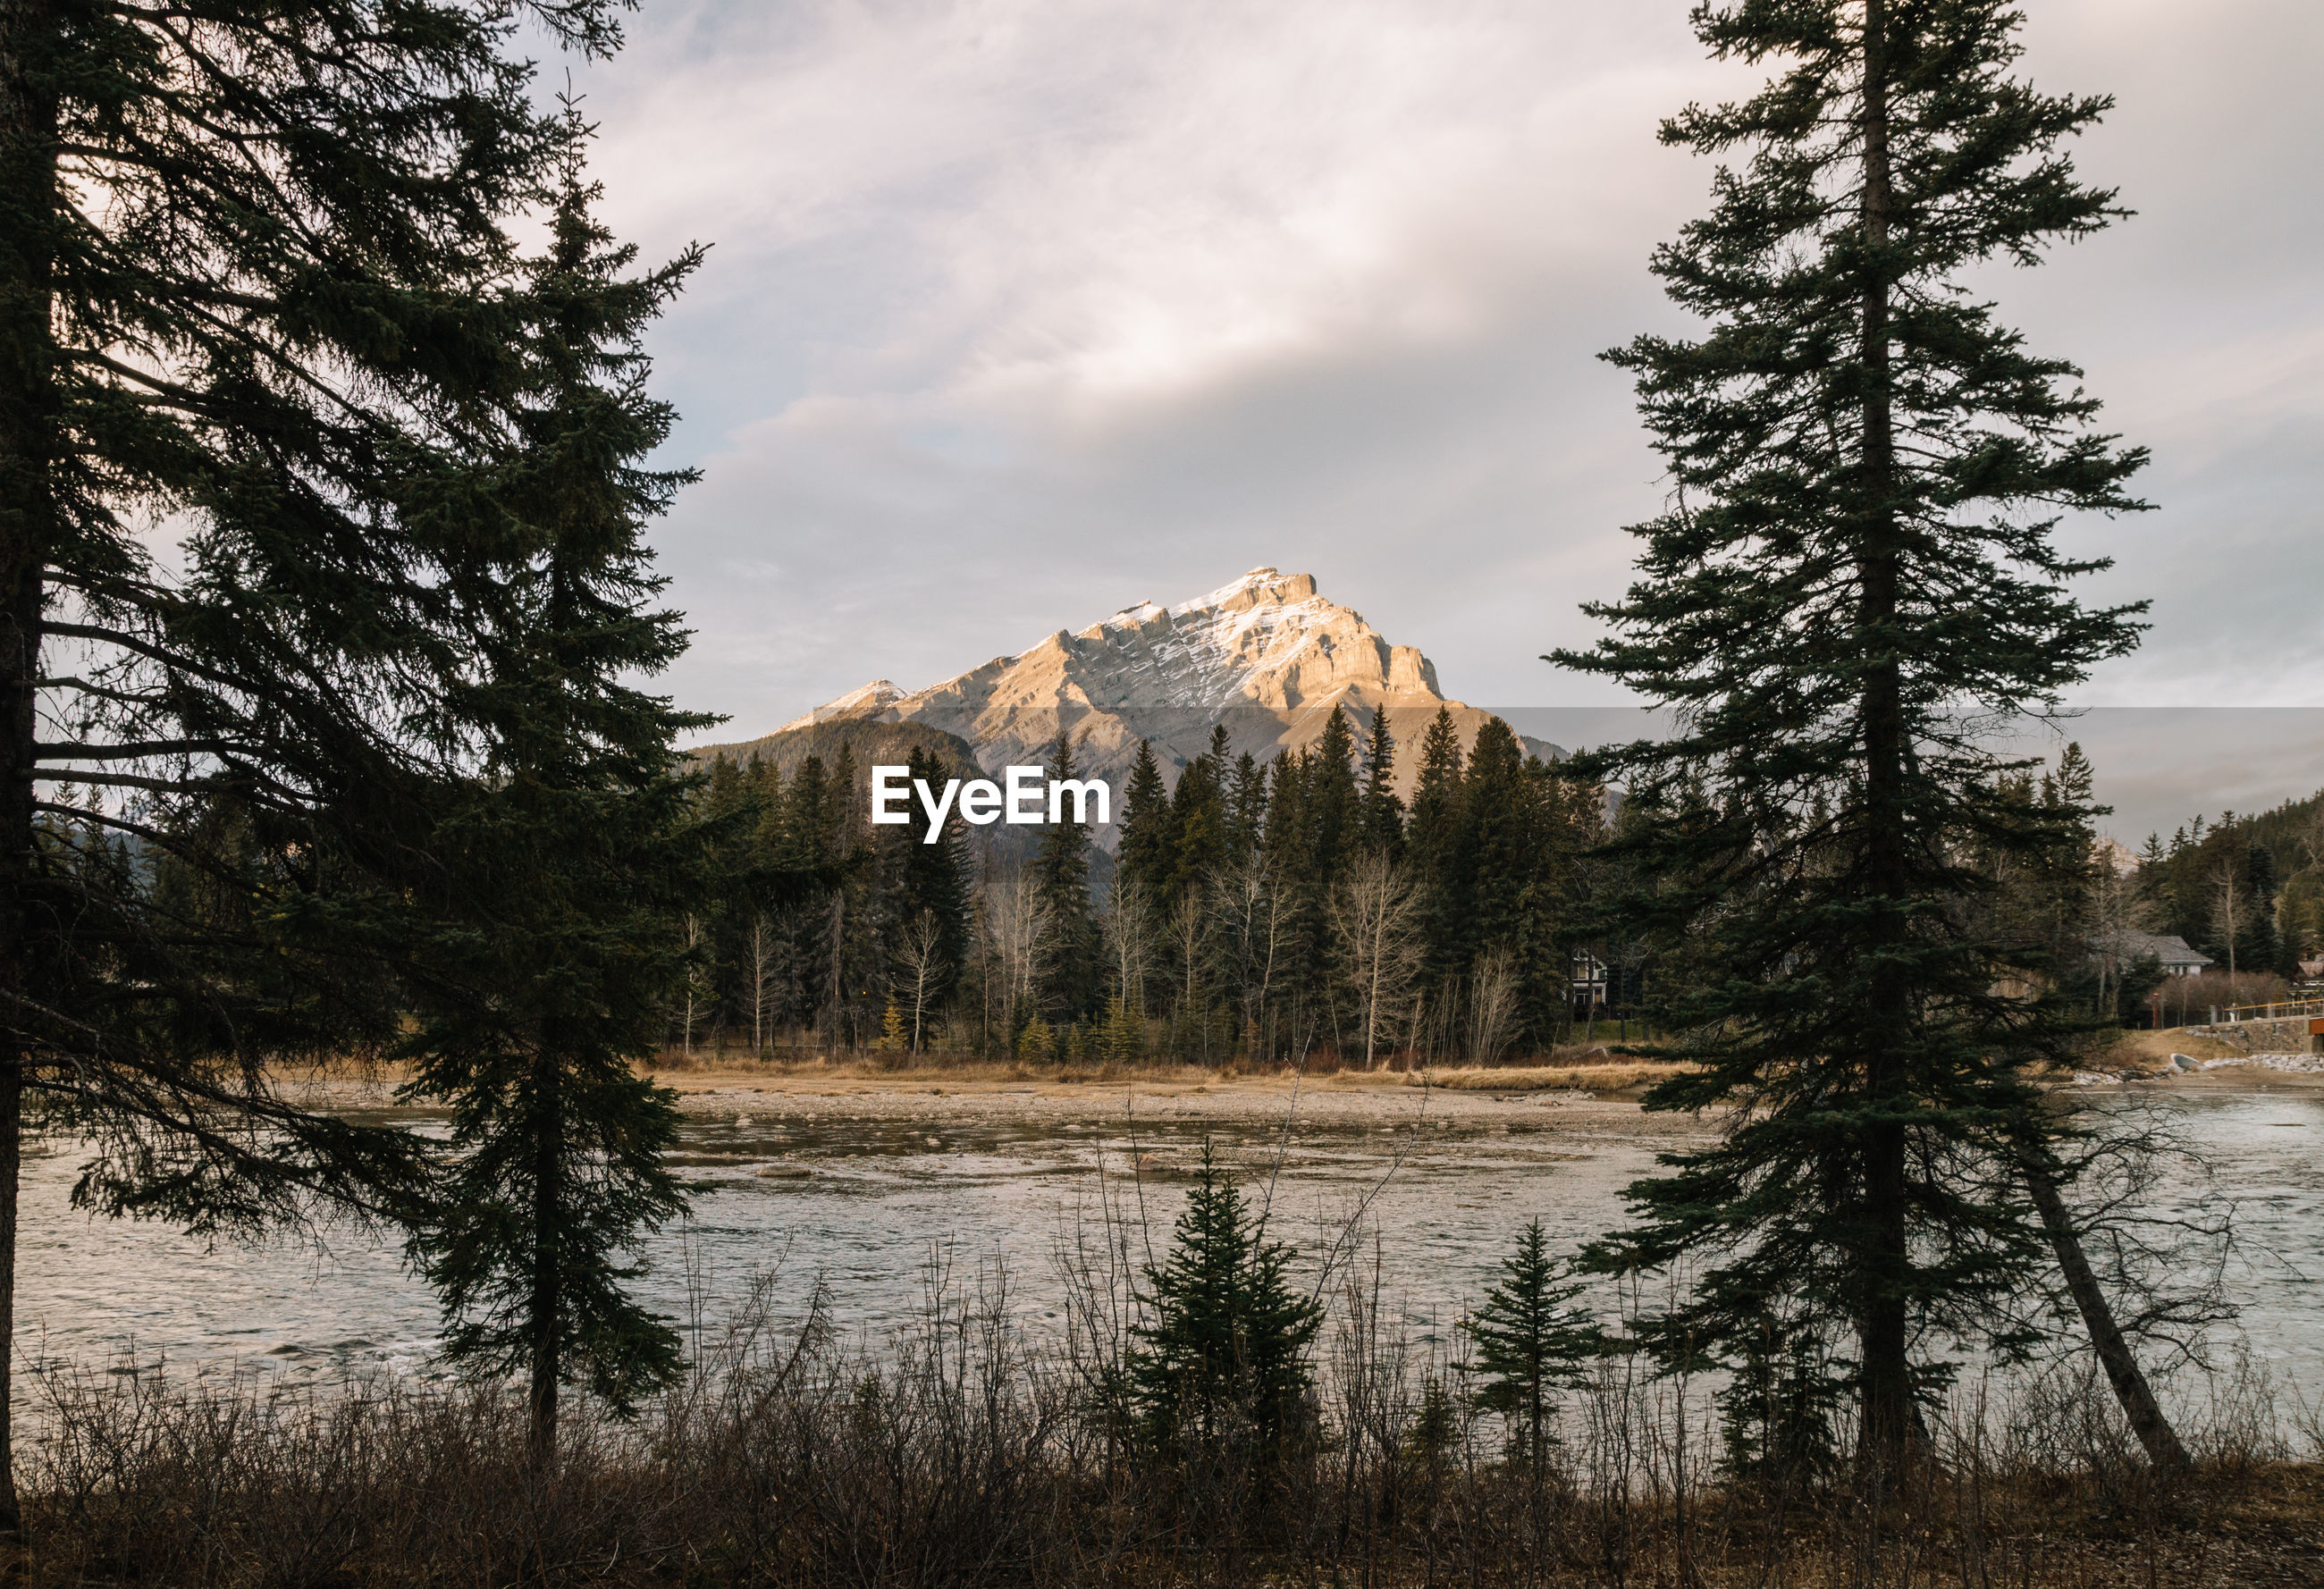 Scenic view of river by trees and mountain against cloudy sky